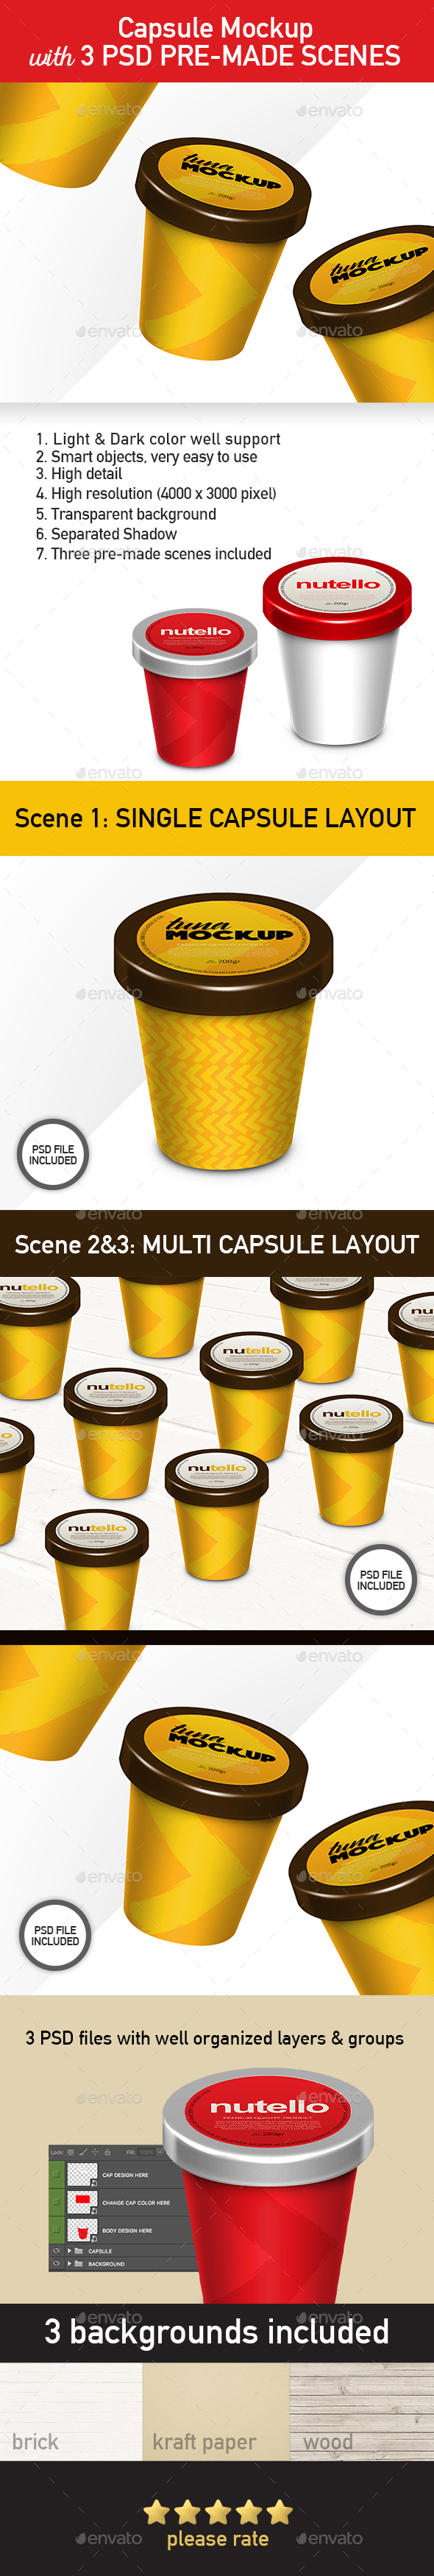 Capsule Container Mockup - Food and Drink Packaging